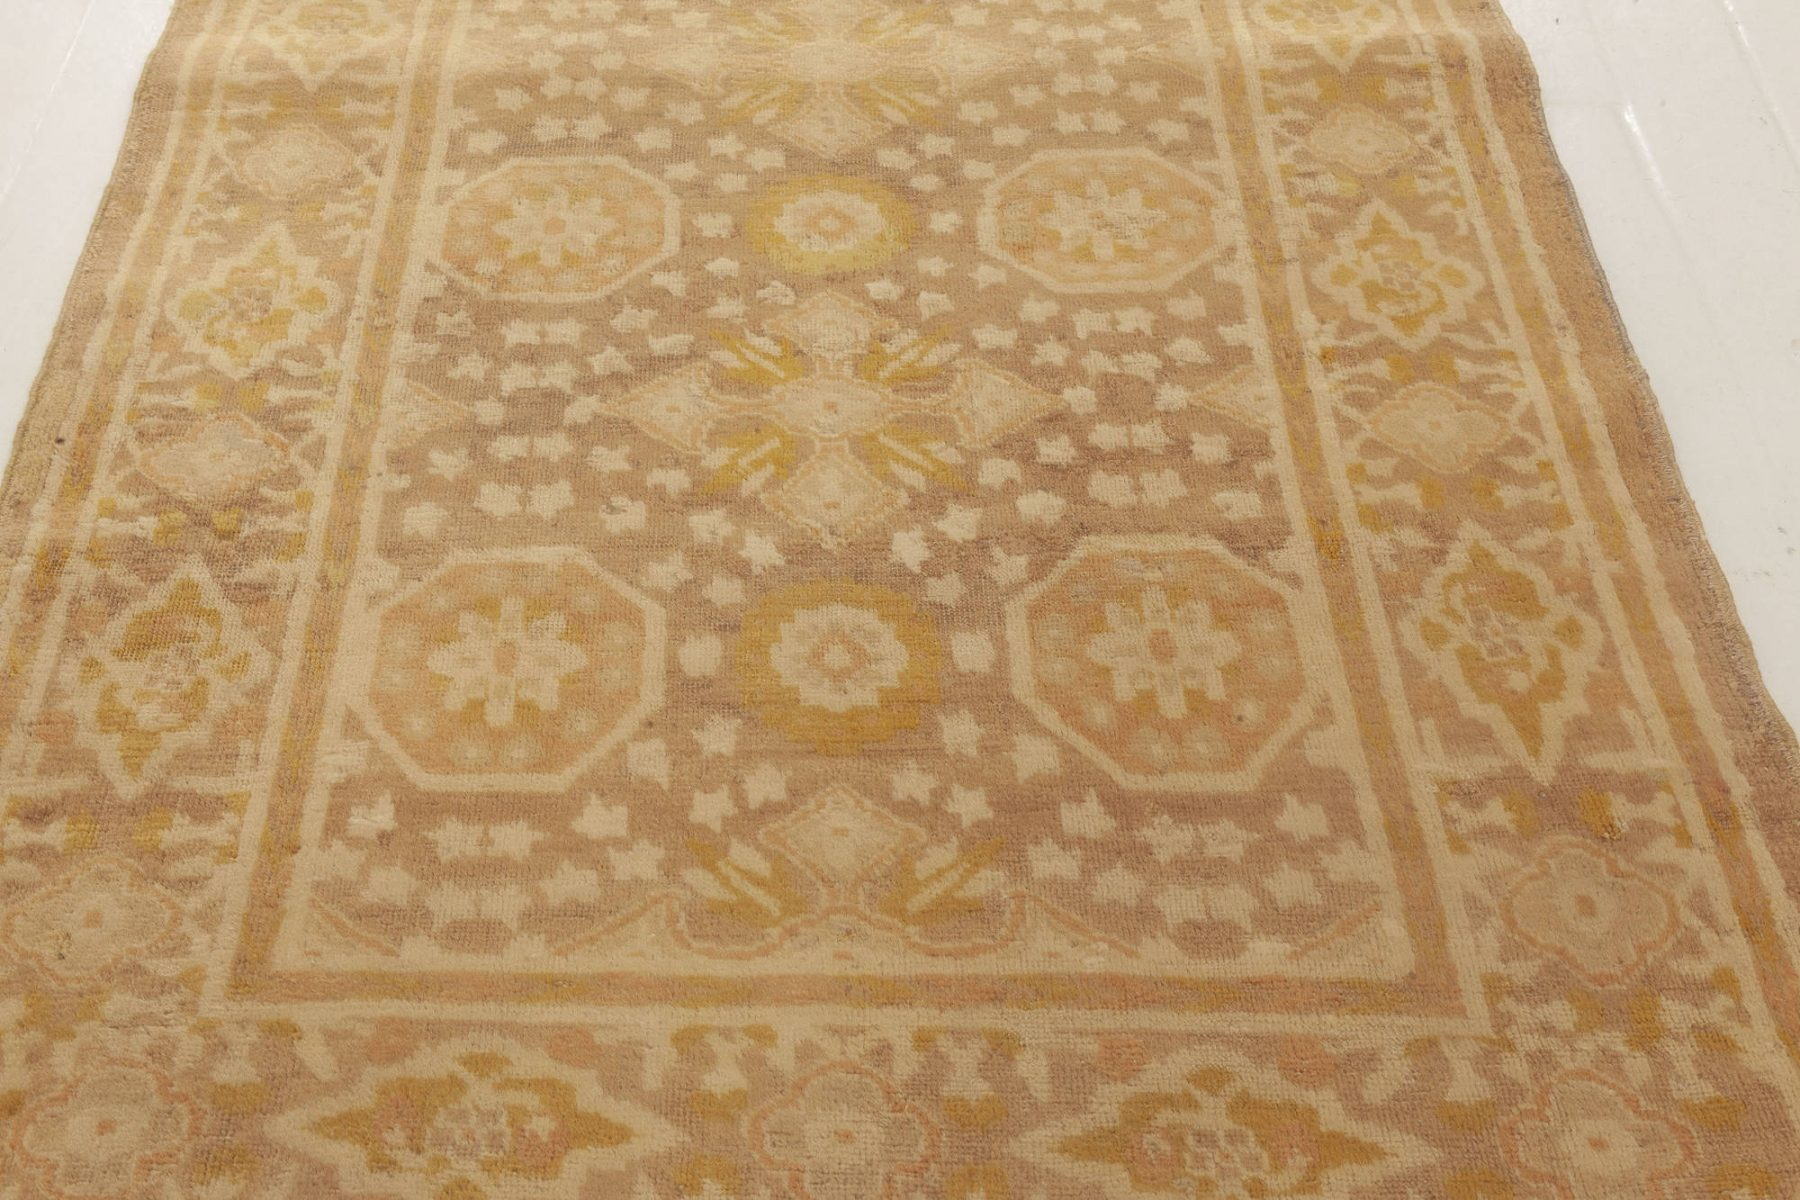 Antique Persian Tabriz Runner Rug BB3838